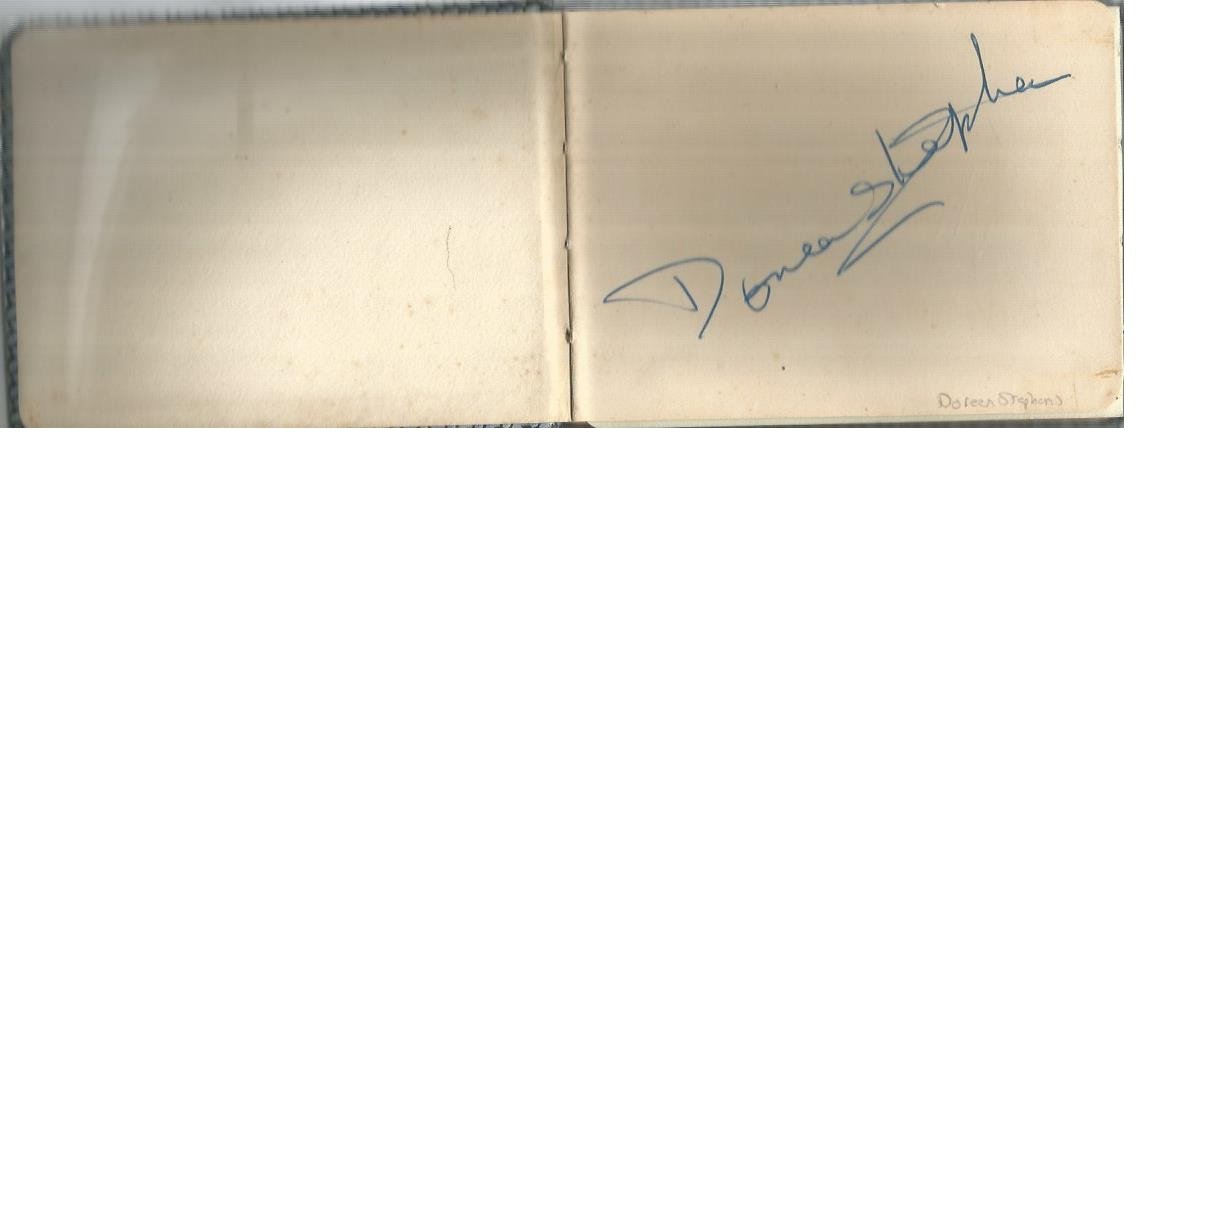 Lot 9 - Vintage autograph book with 5 signatures. Doreen Stephens, Max Bacon, Billy Cotton, Pauline North,